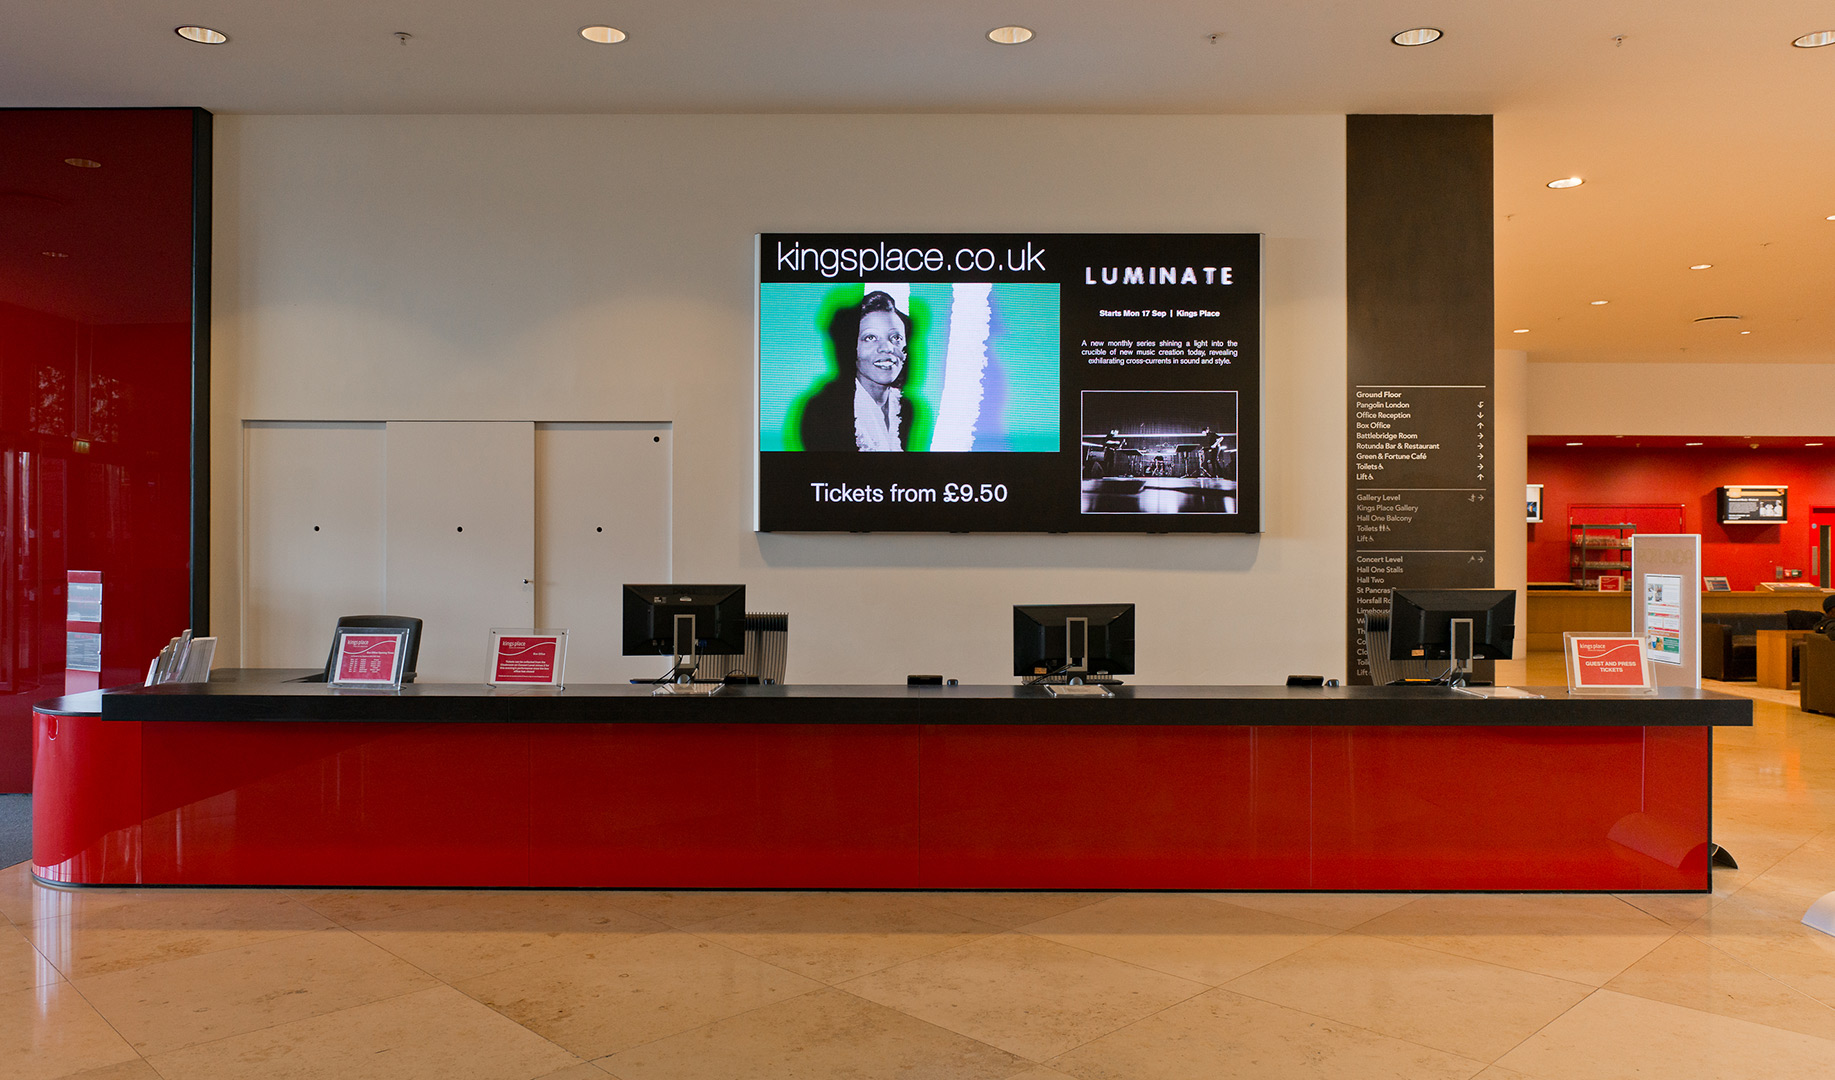 Eclipse Digital Media - Digital Signage & AV Solutions - Kings Place London Case Study - Indoor LED Narrow Pixel Pitch 2mm